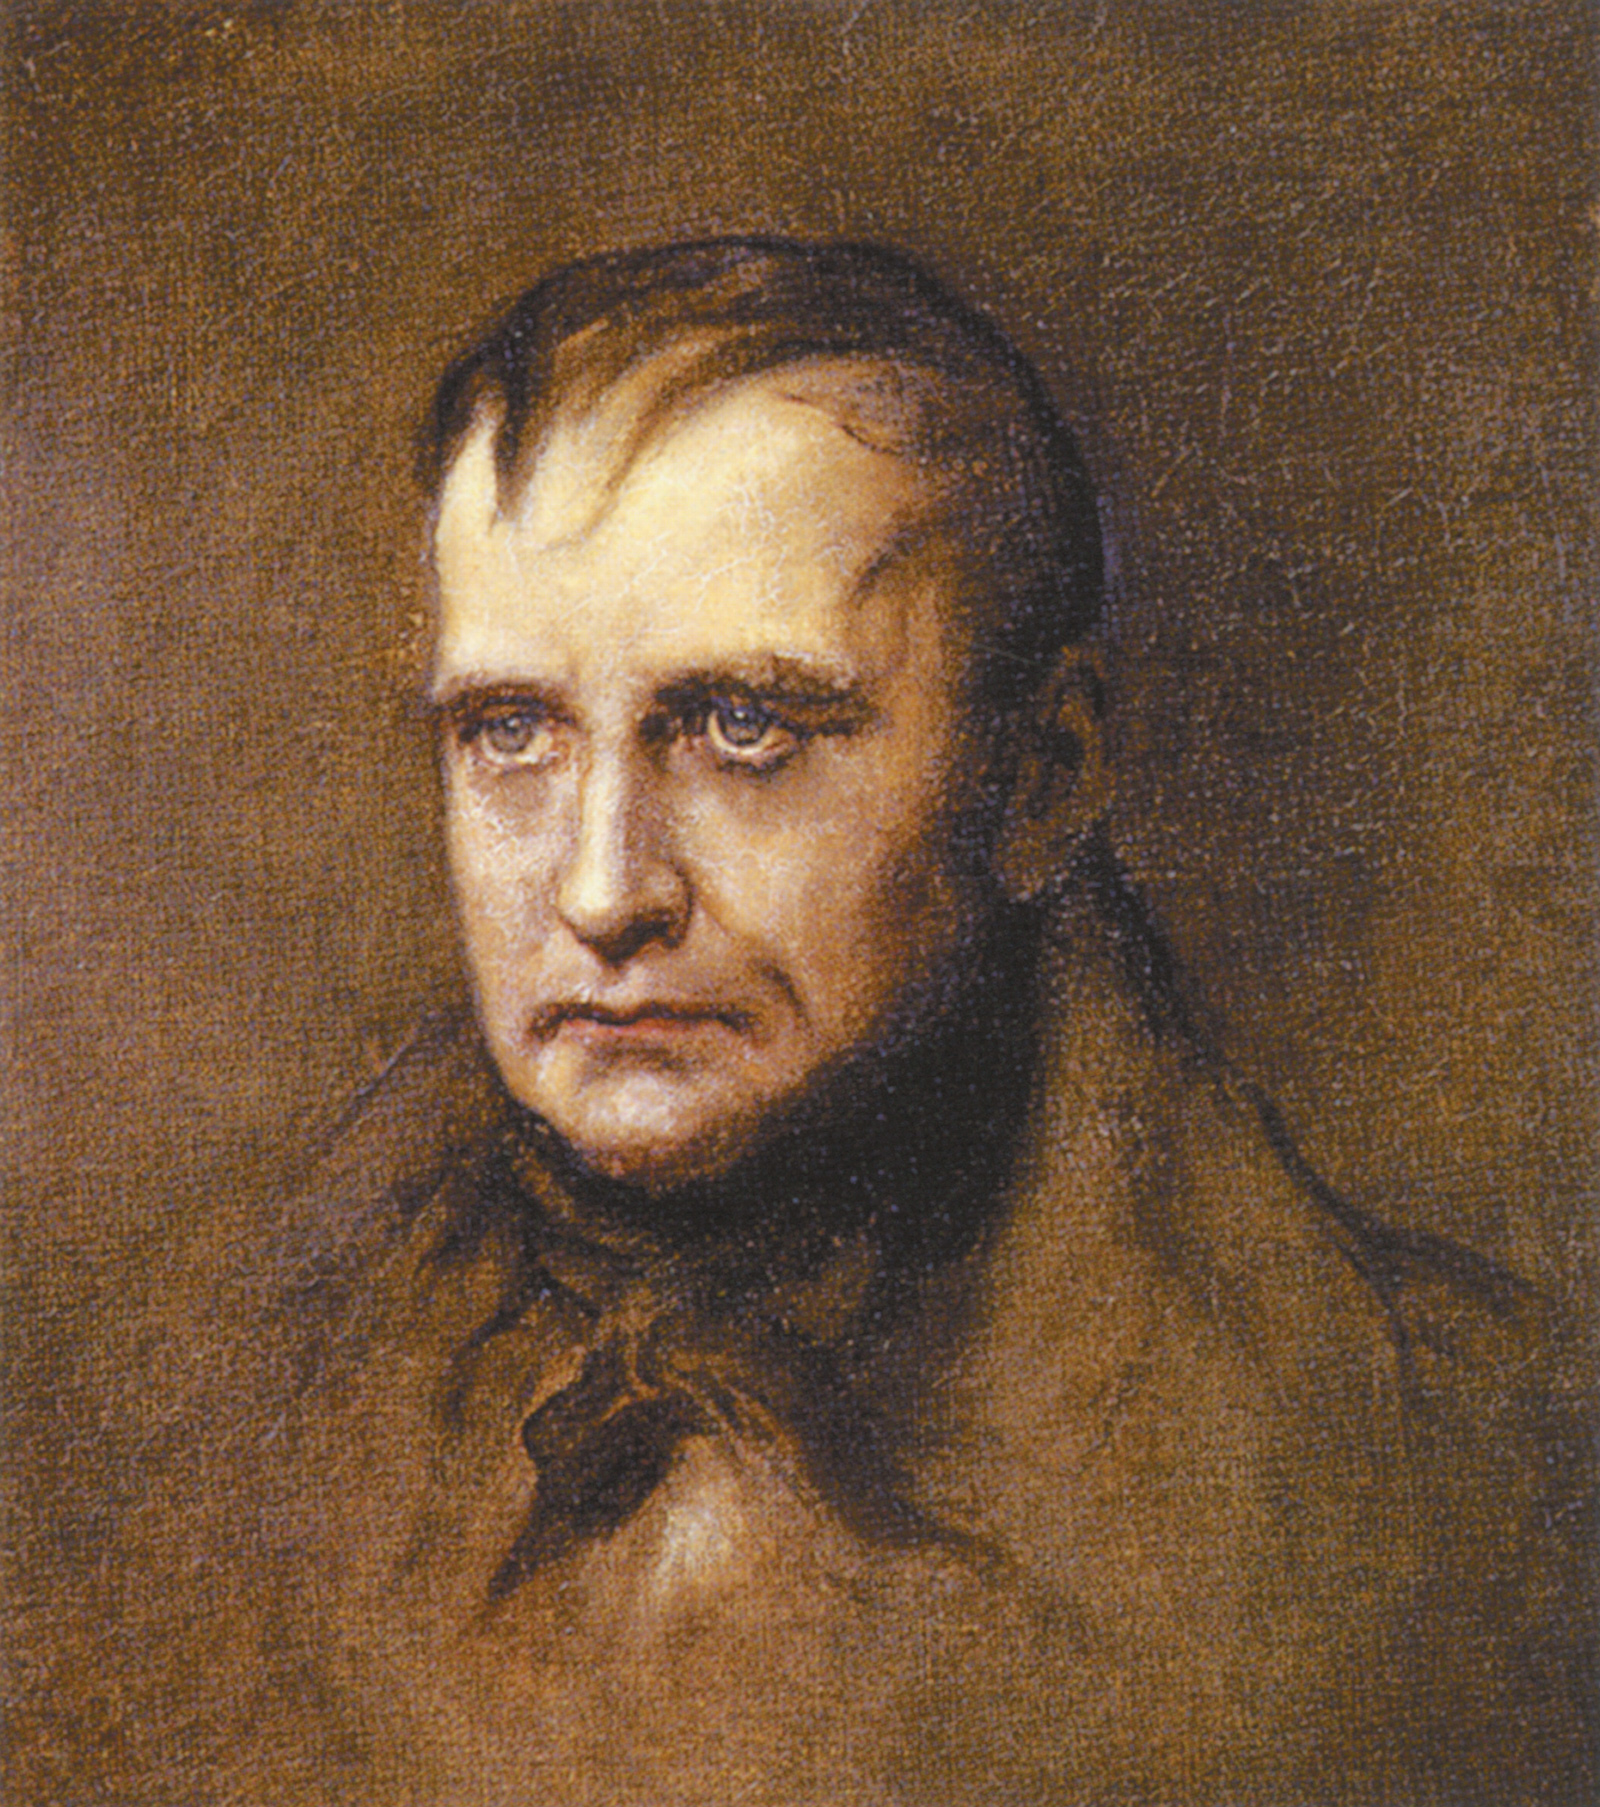 'St. Helena, the Last Stage'; portrait of Napoleon by James Sant, 1901